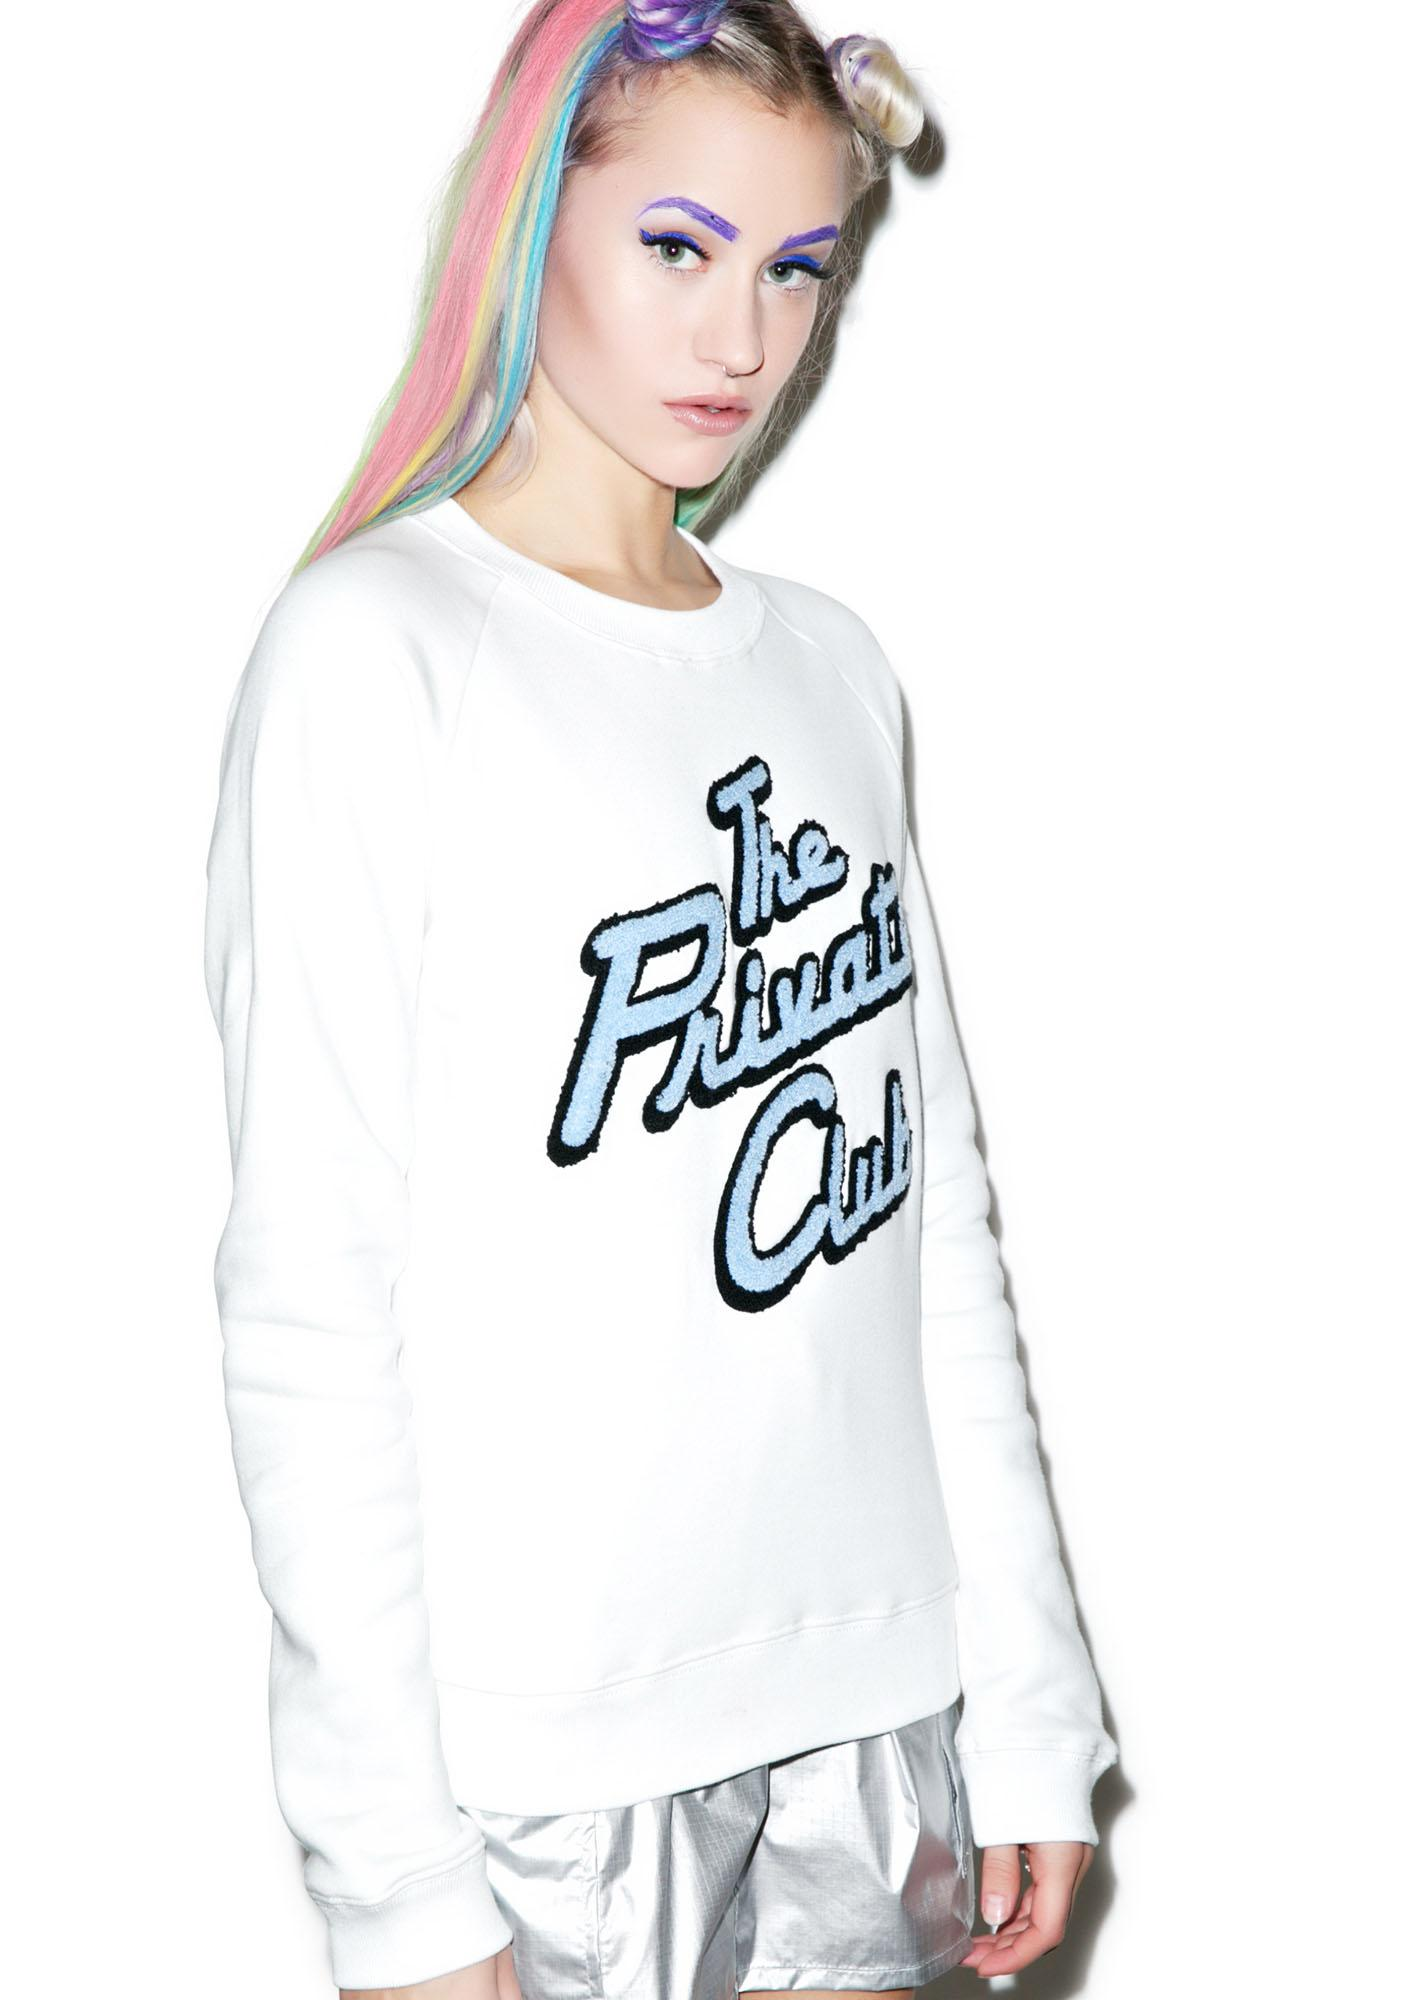 Joyrich Private Club Crewneck